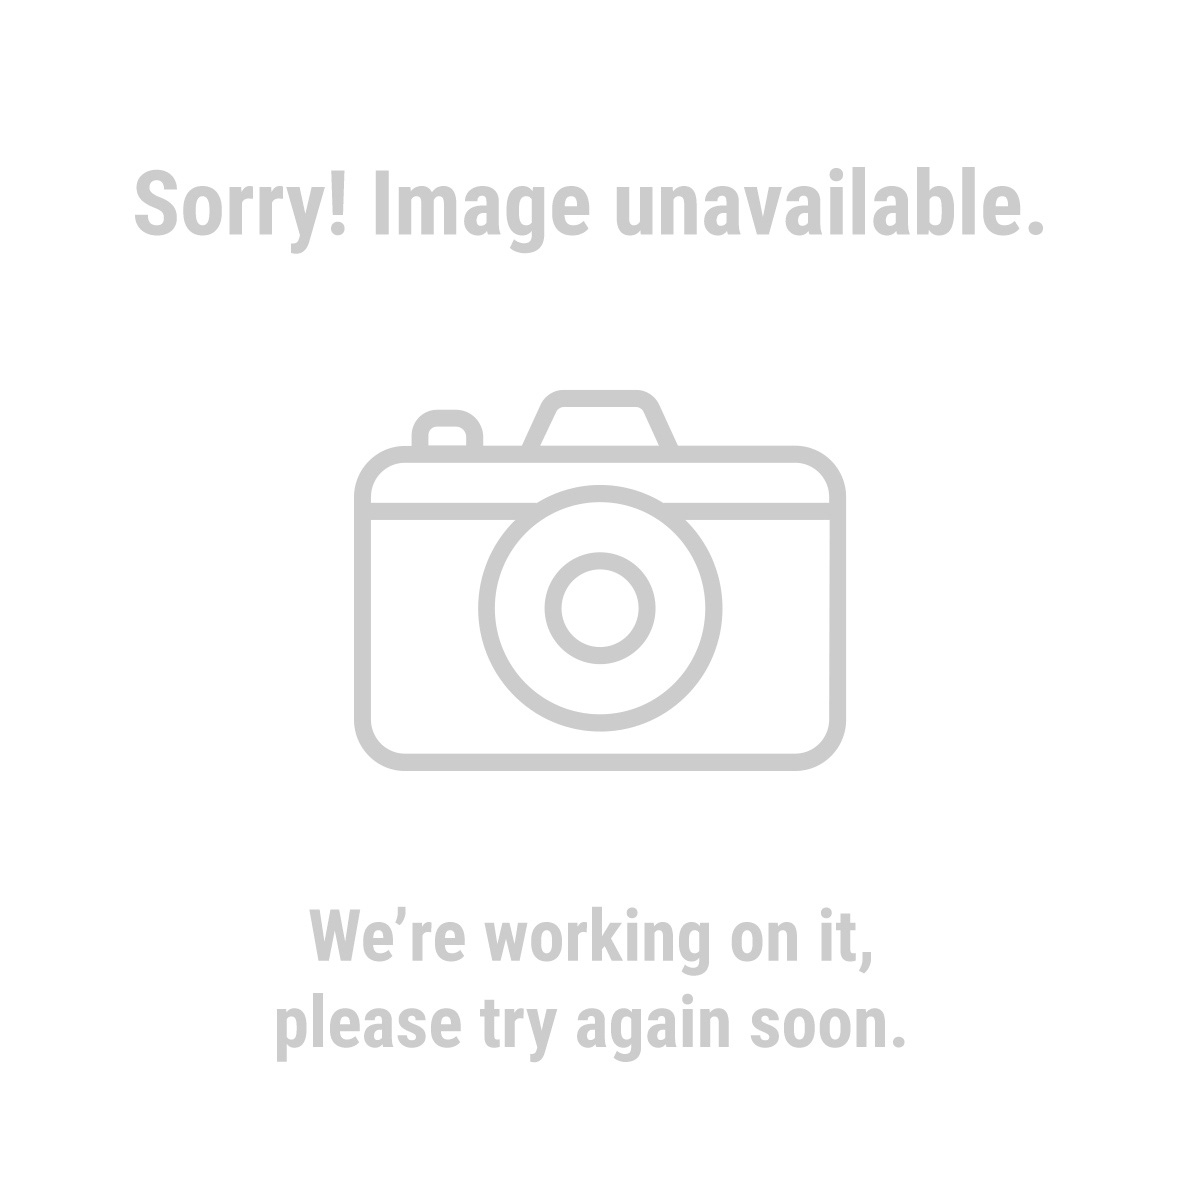 HFT® 69204 15 ft. 2 in. x 19 ft. 6 in. Reflective Heavy Duty Silver Tarp